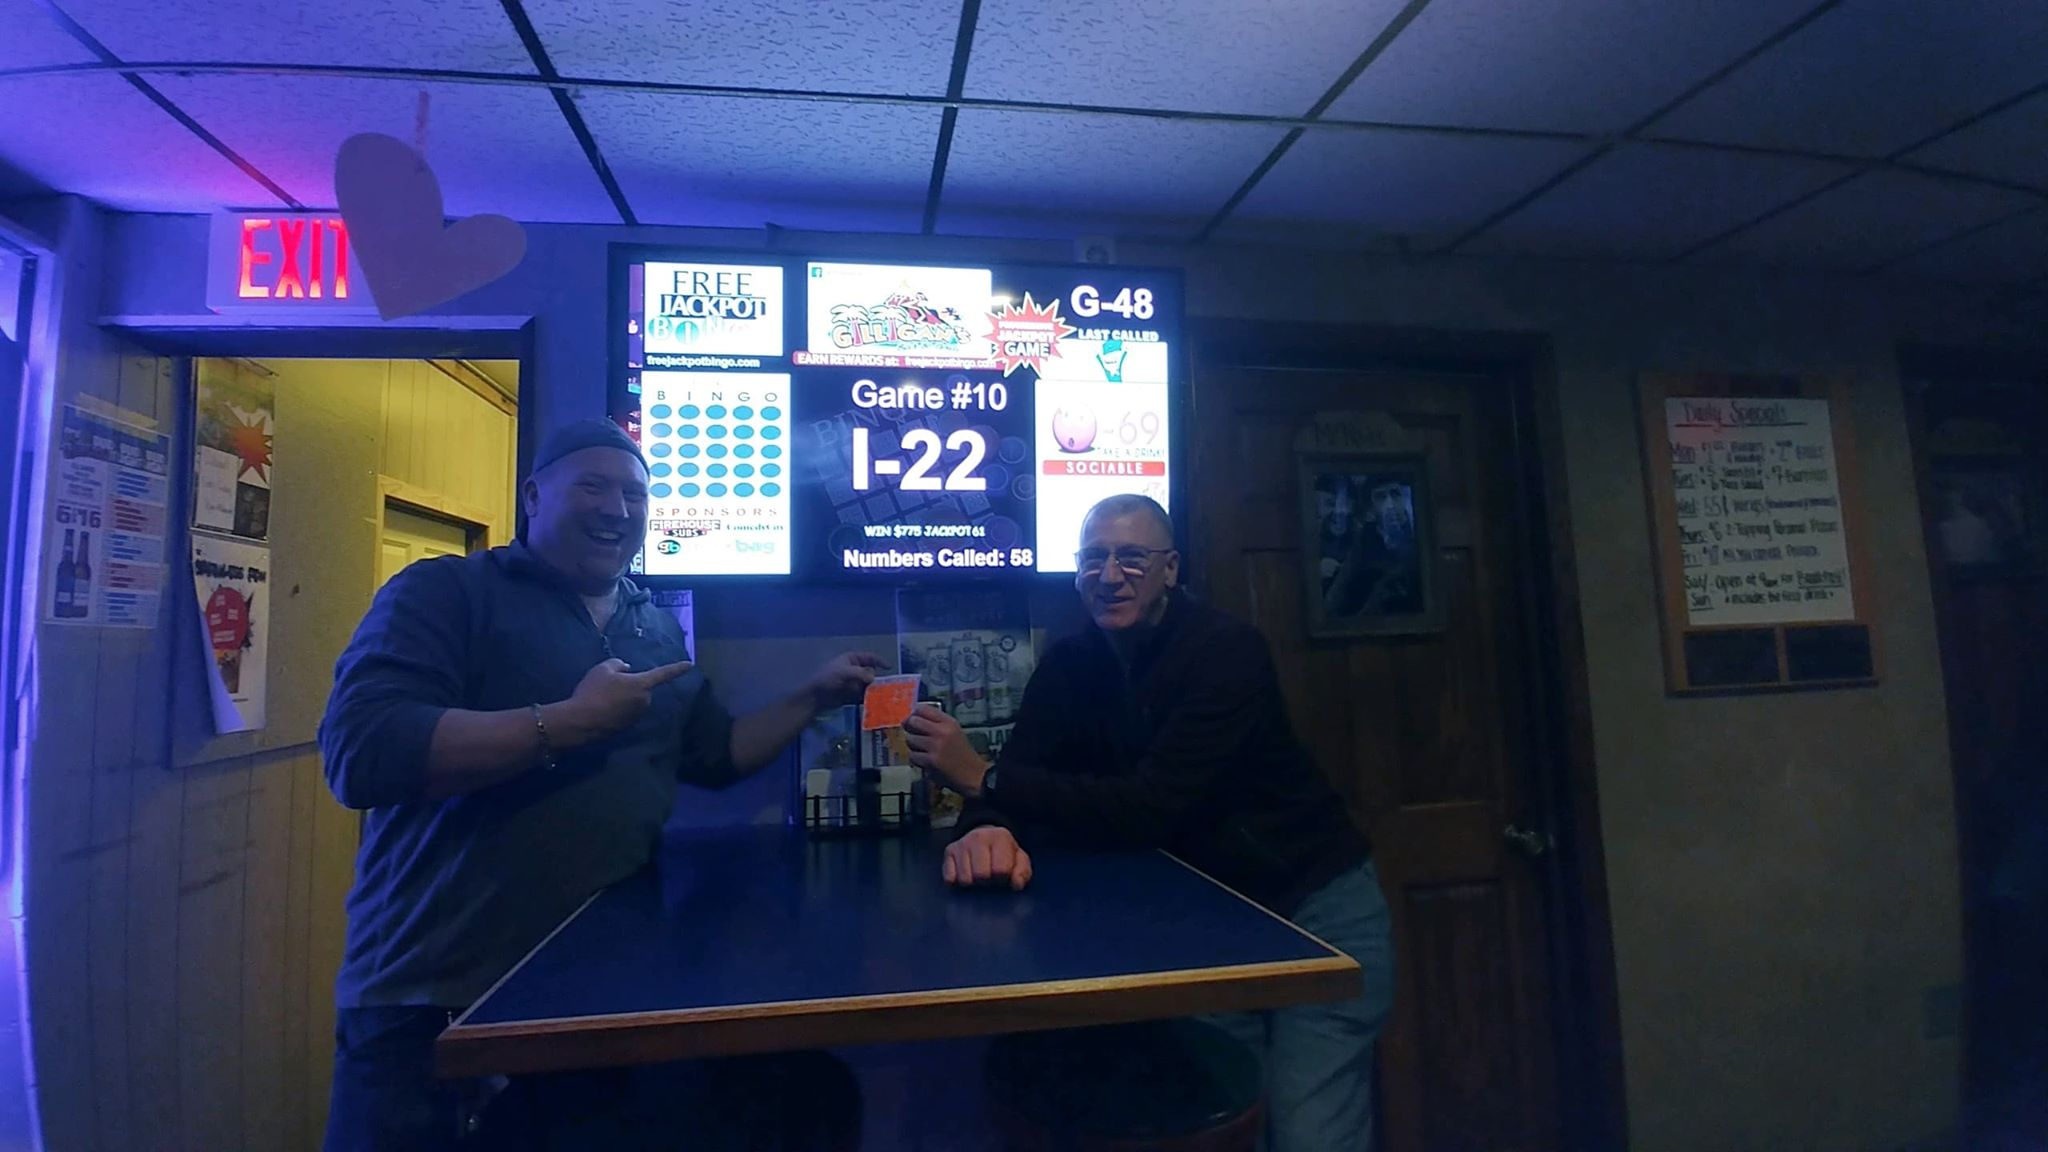 Bingo Player Hits $775 Progressive Jackpot at Gilligans on 2/4/20